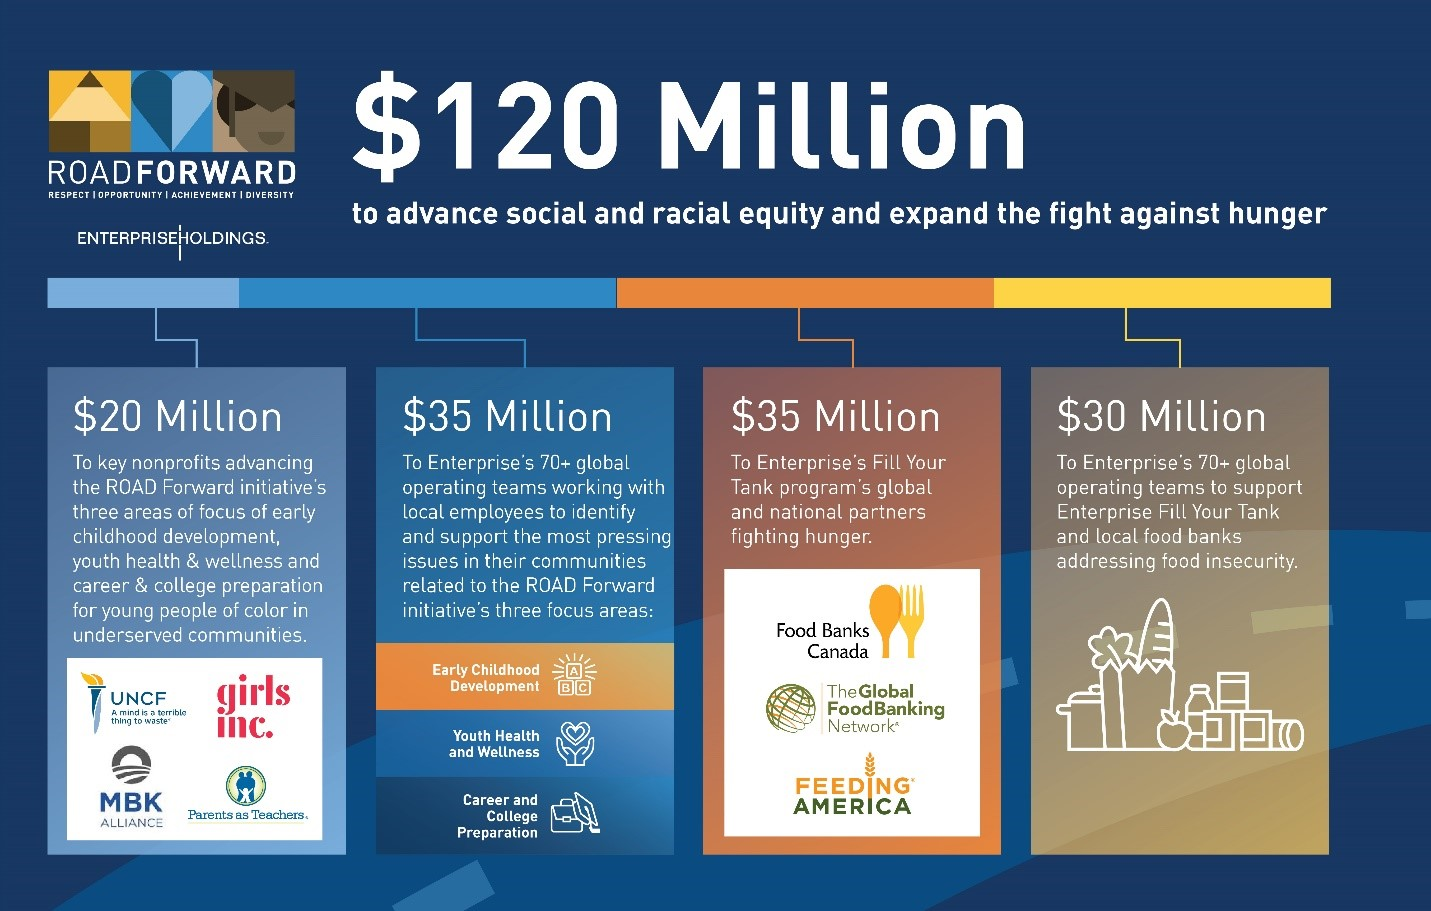 Infographic showing show the $120 Million we be divided across 4 areas